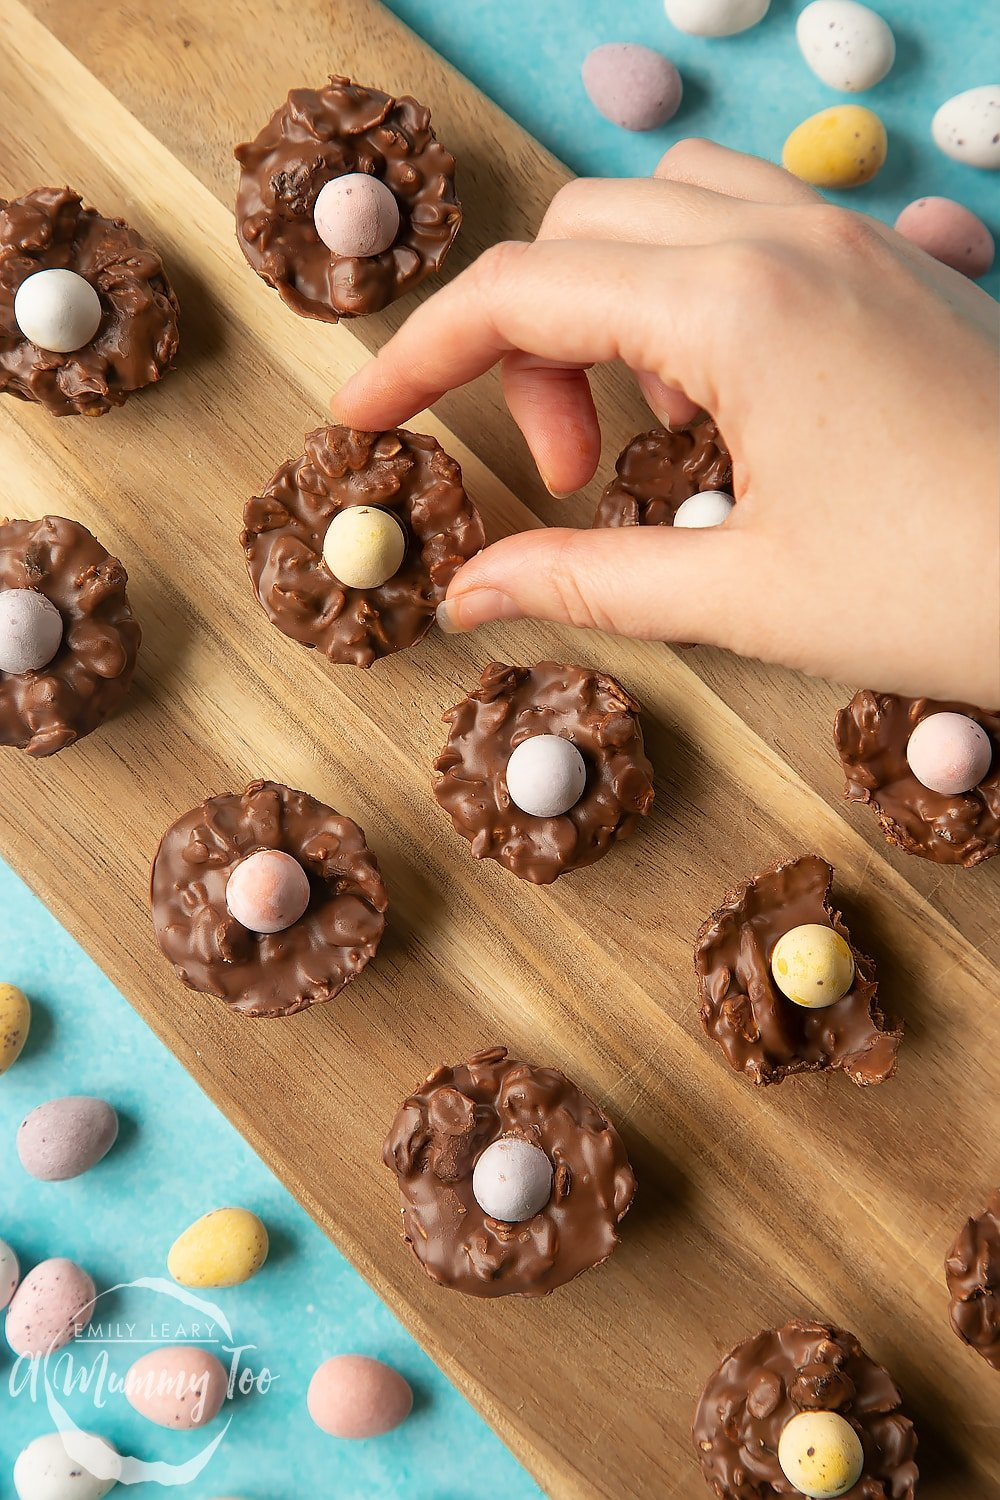 Overhead shot of a hand holding a chocolate Easter nest cakes with an Easter egg